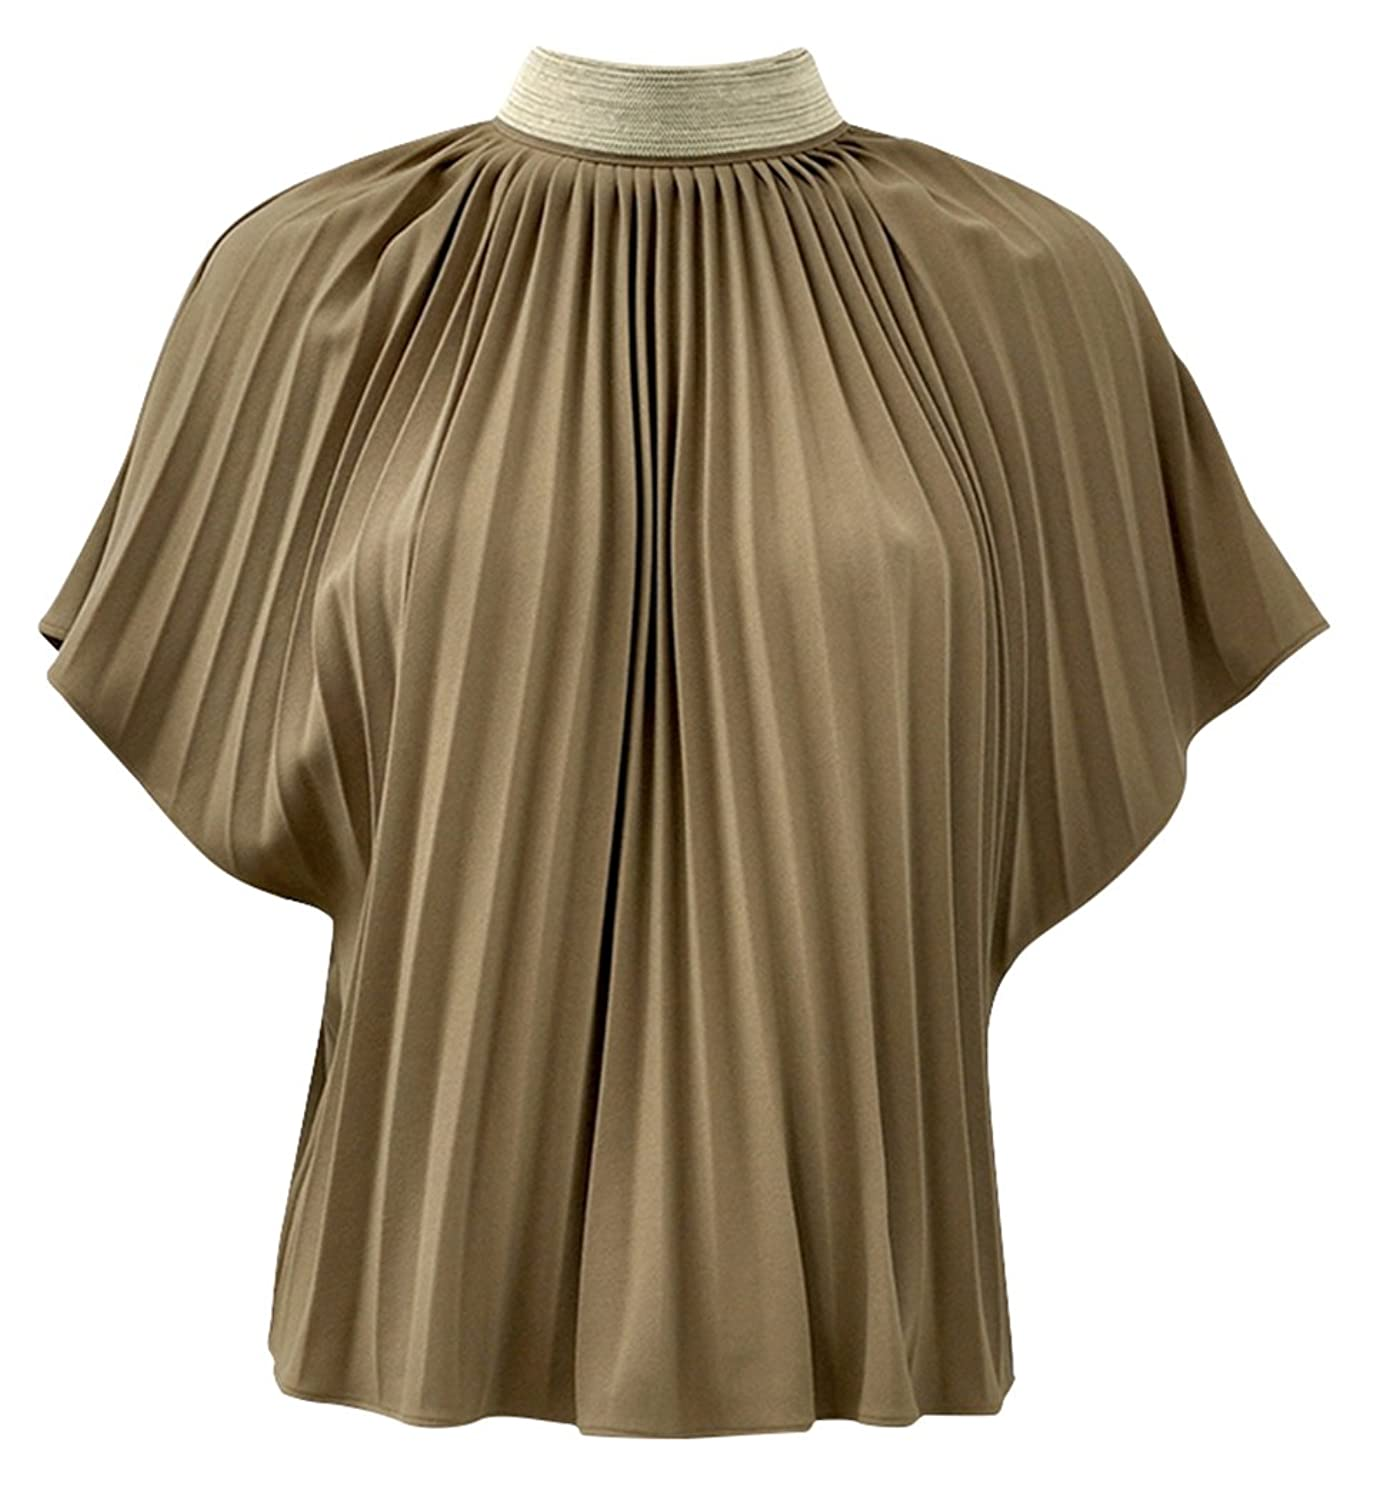 Gracia Women's Embellished Neck Pleated Blouse Top